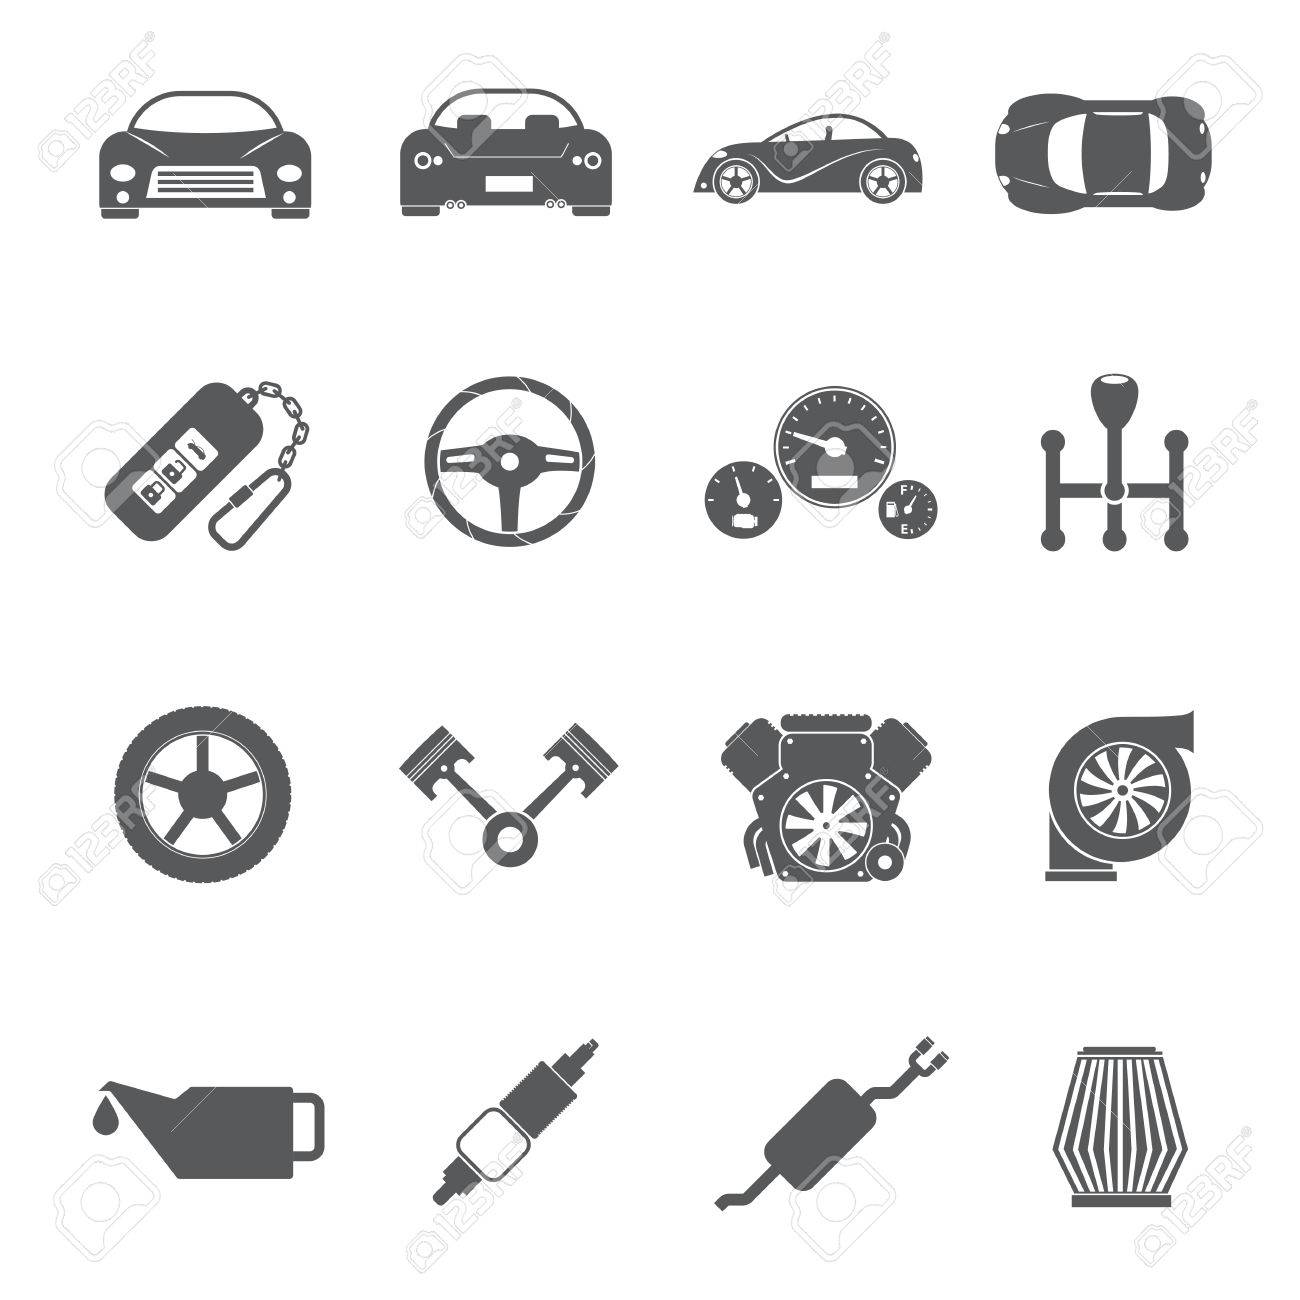 Car Parts Icons Royalty Free Cliparts Vectors And Stock Illustration Image 49824454